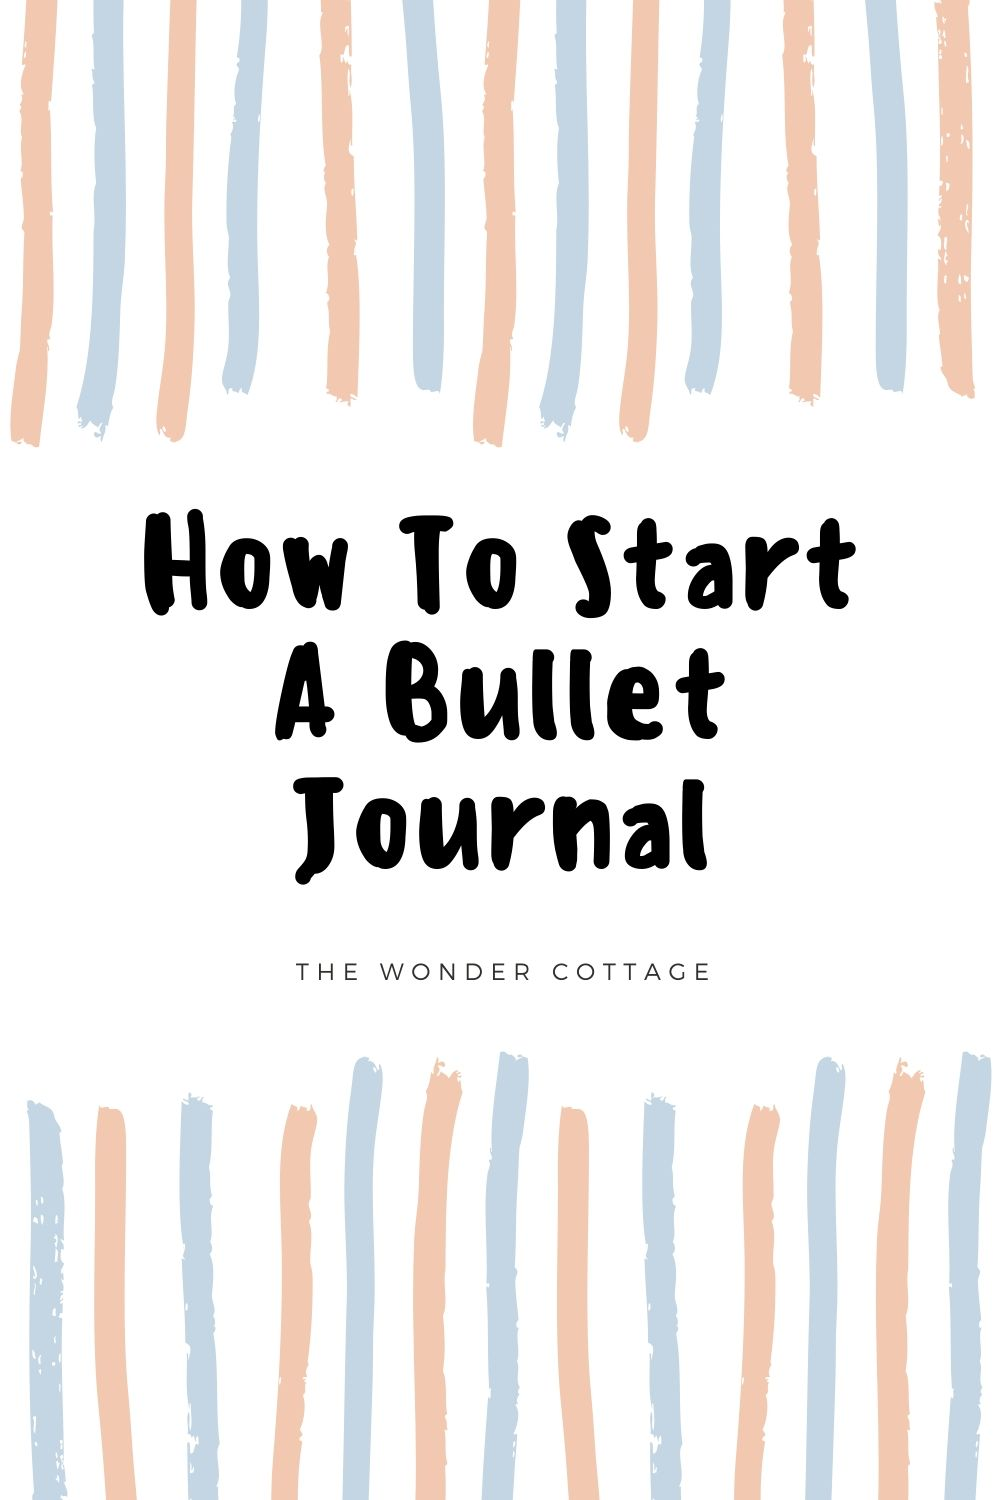 Get started with bullet journalling